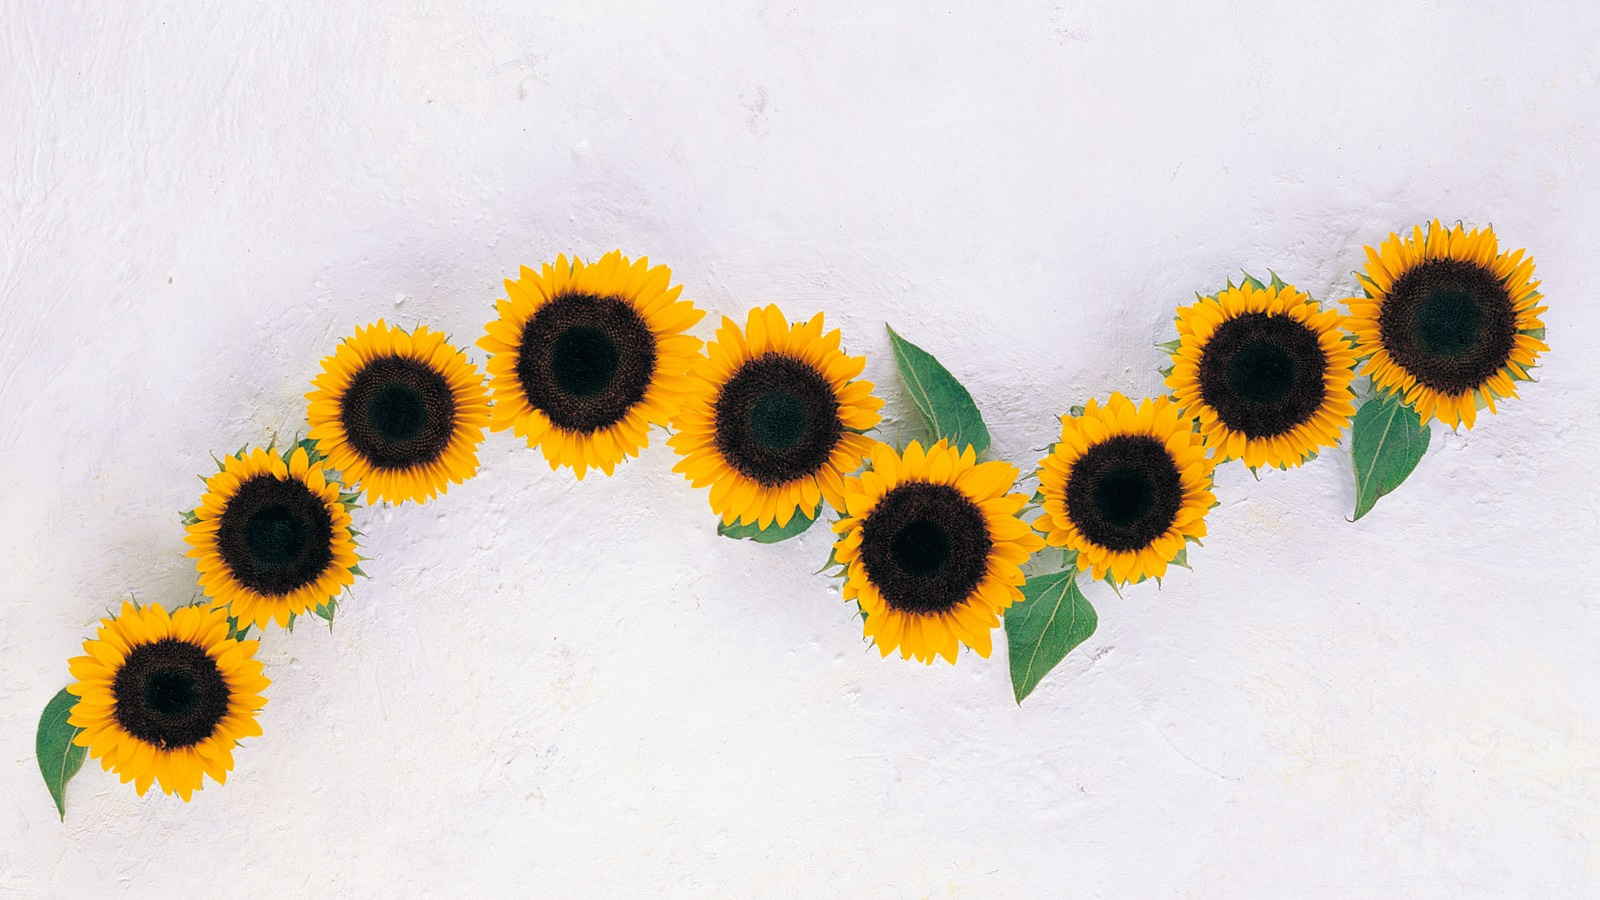 Sunflowers, white background 1600x900 wallpaper